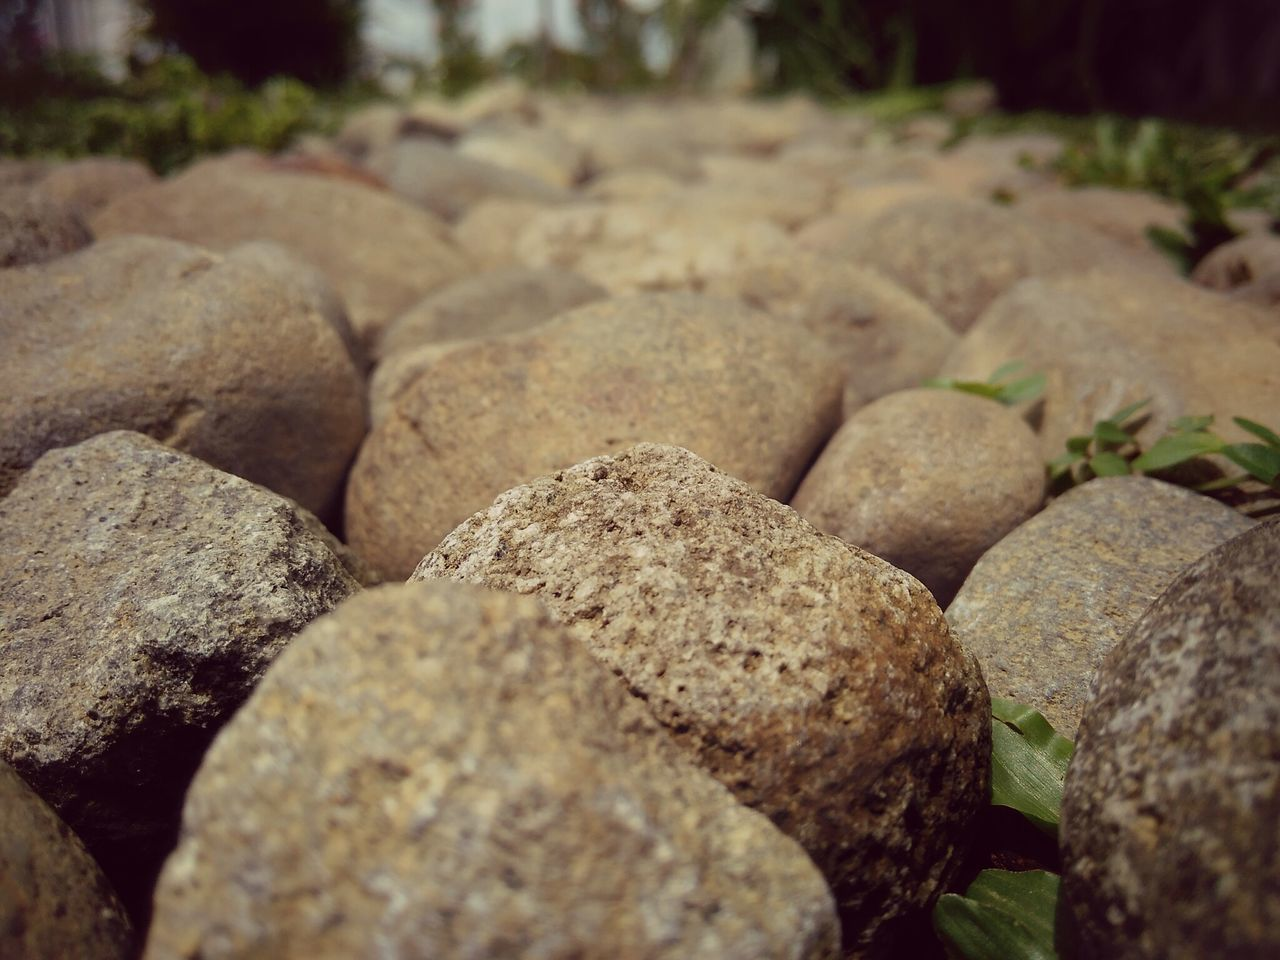 rock - object, no people, close-up, nature, textured, pebble, focus on foreground, full frame, backgrounds, outdoors, day, pebble beach, freshness